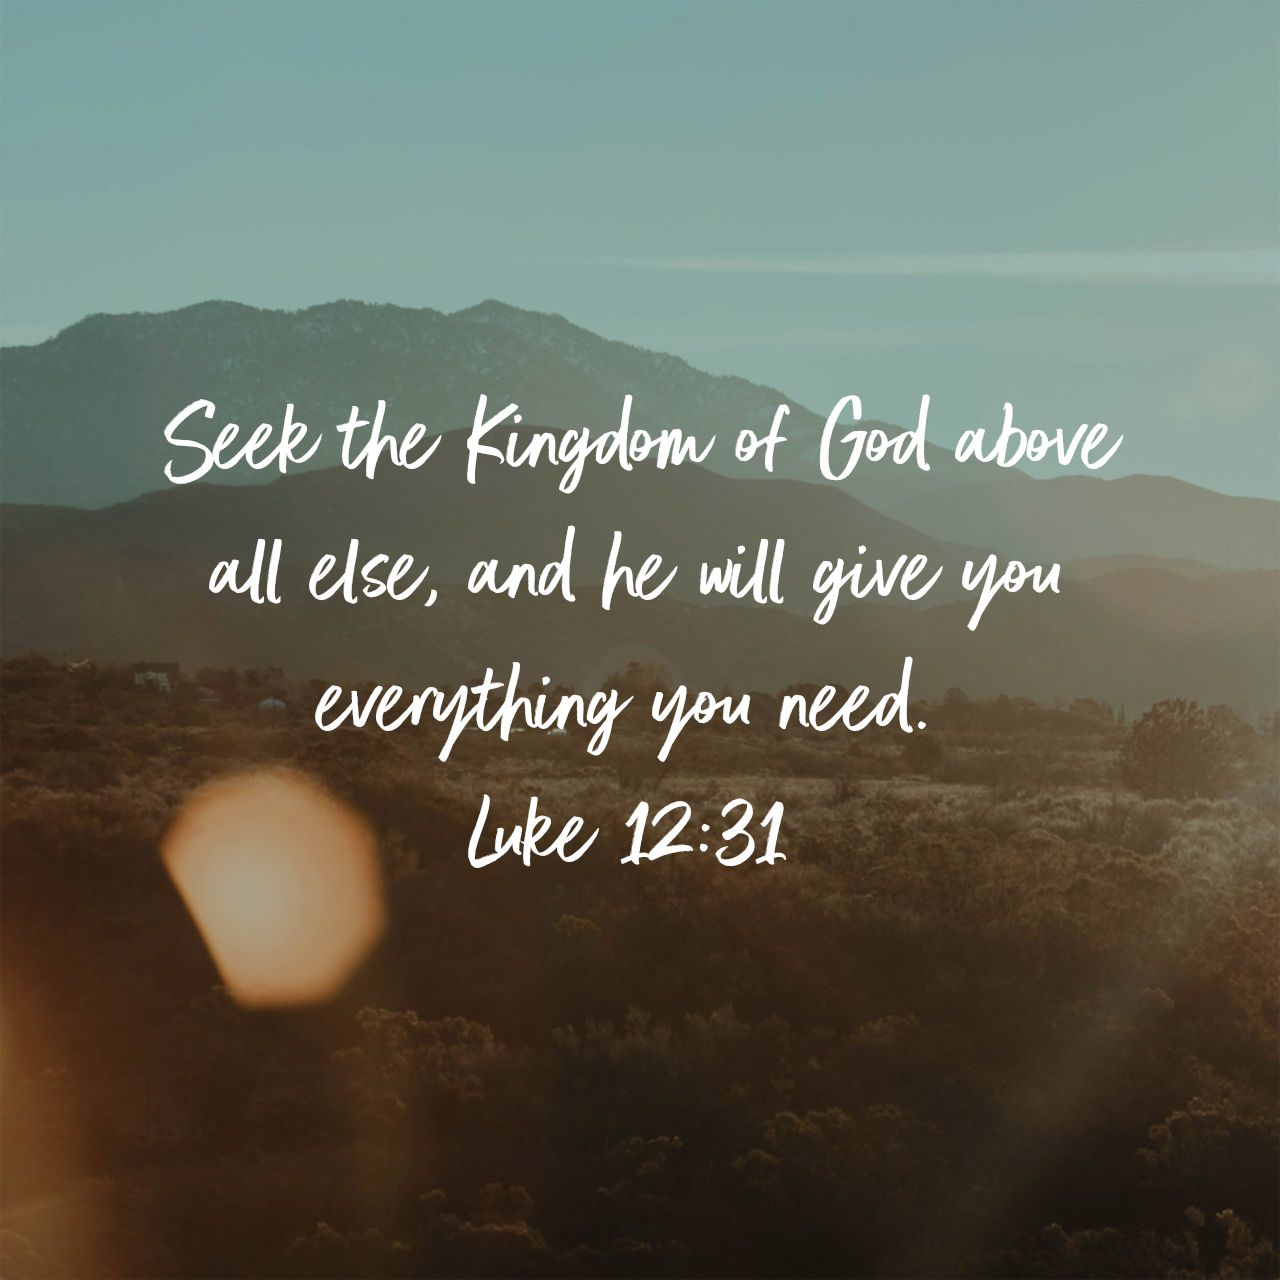 Seek the Kingdom of God above all else, and he will give you everything you need. - Luke 12:31 NLT